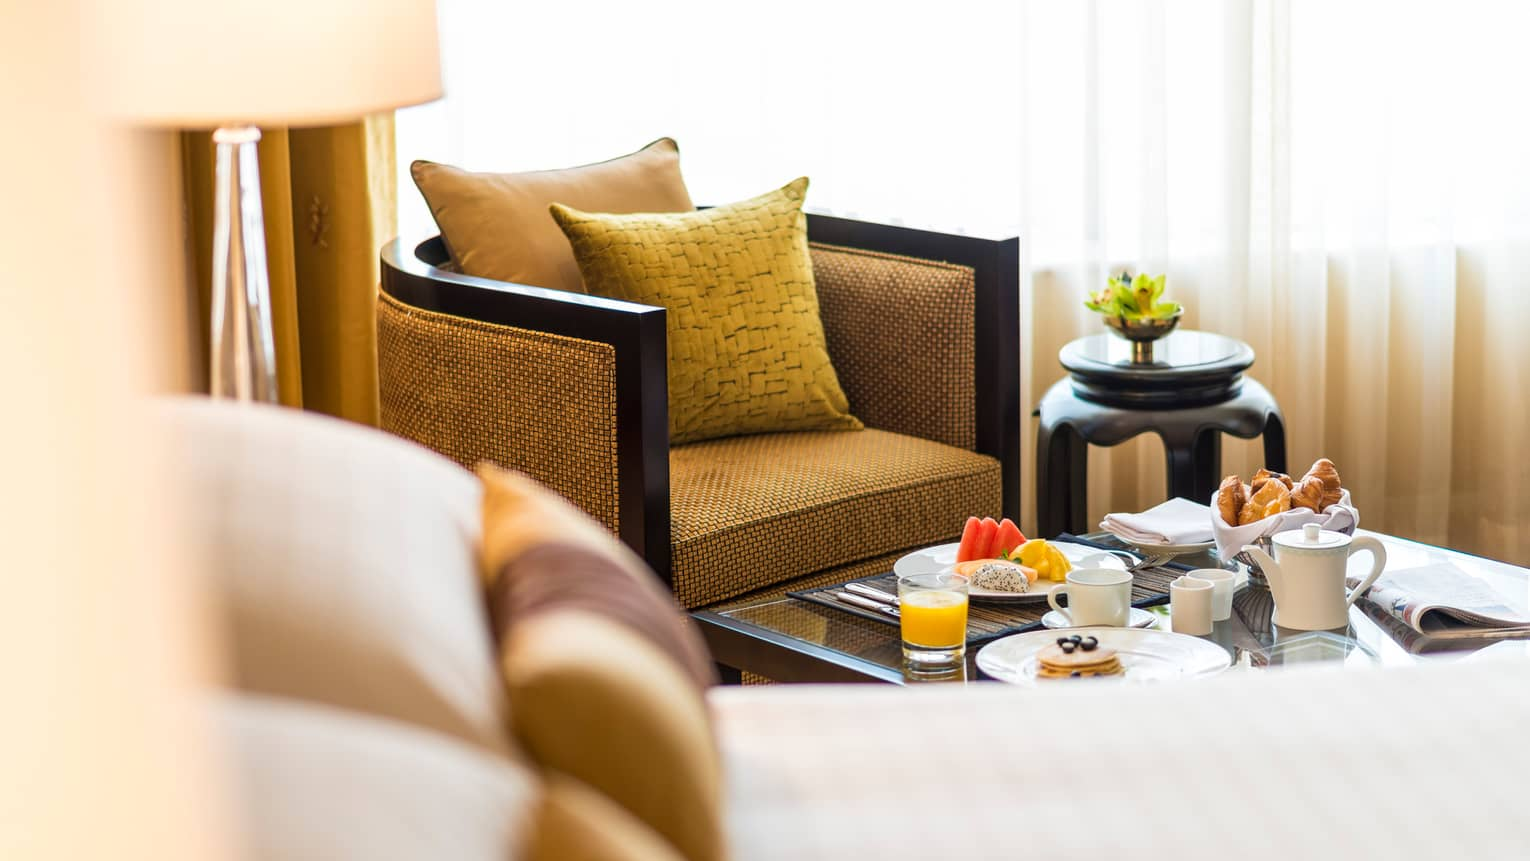 Gold armchair, pillow by in-room dining table with fresh fruit, pastries, coffee, juice